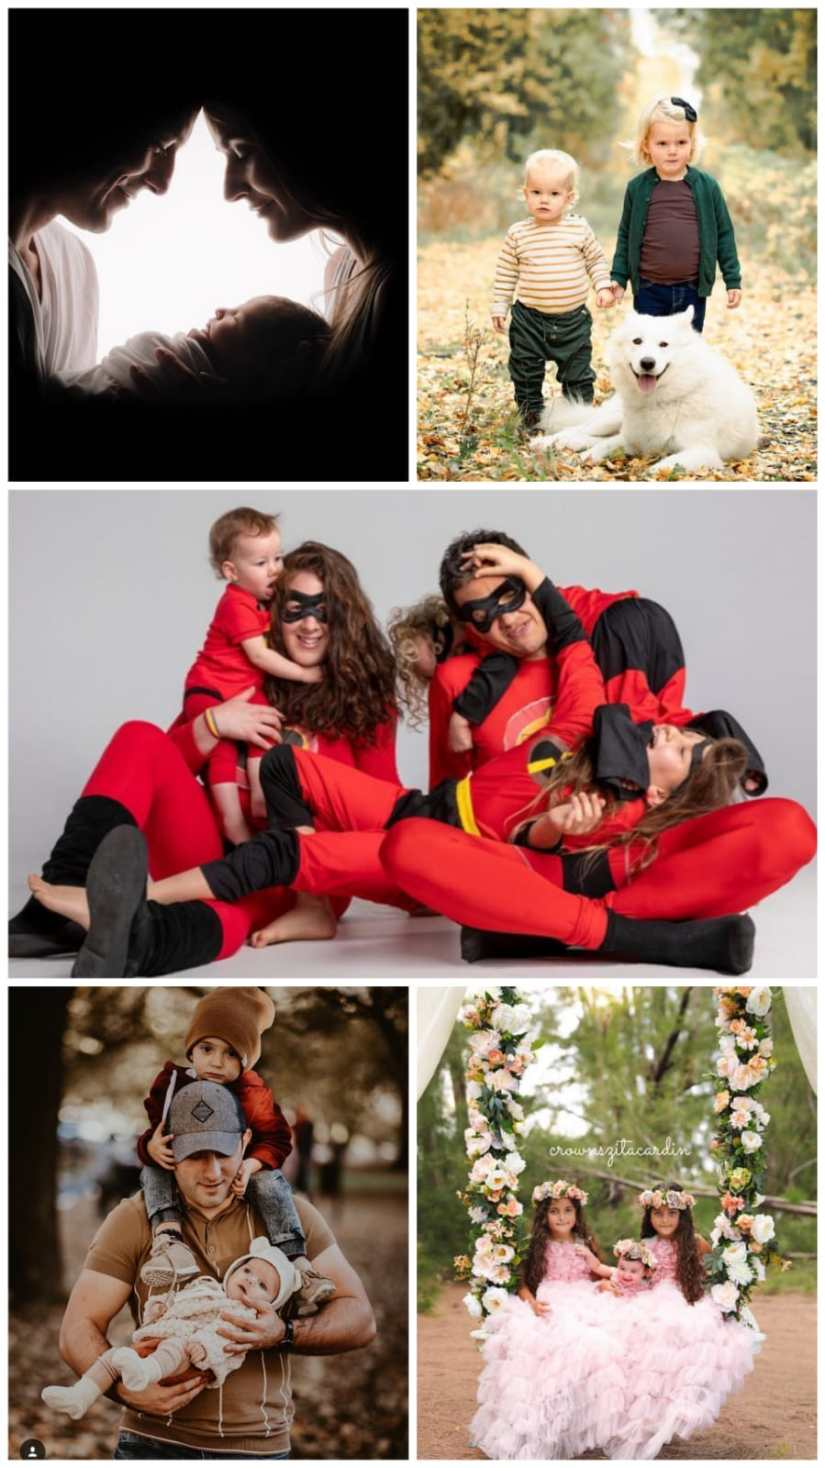 Unique Family Photoshoot Ideas